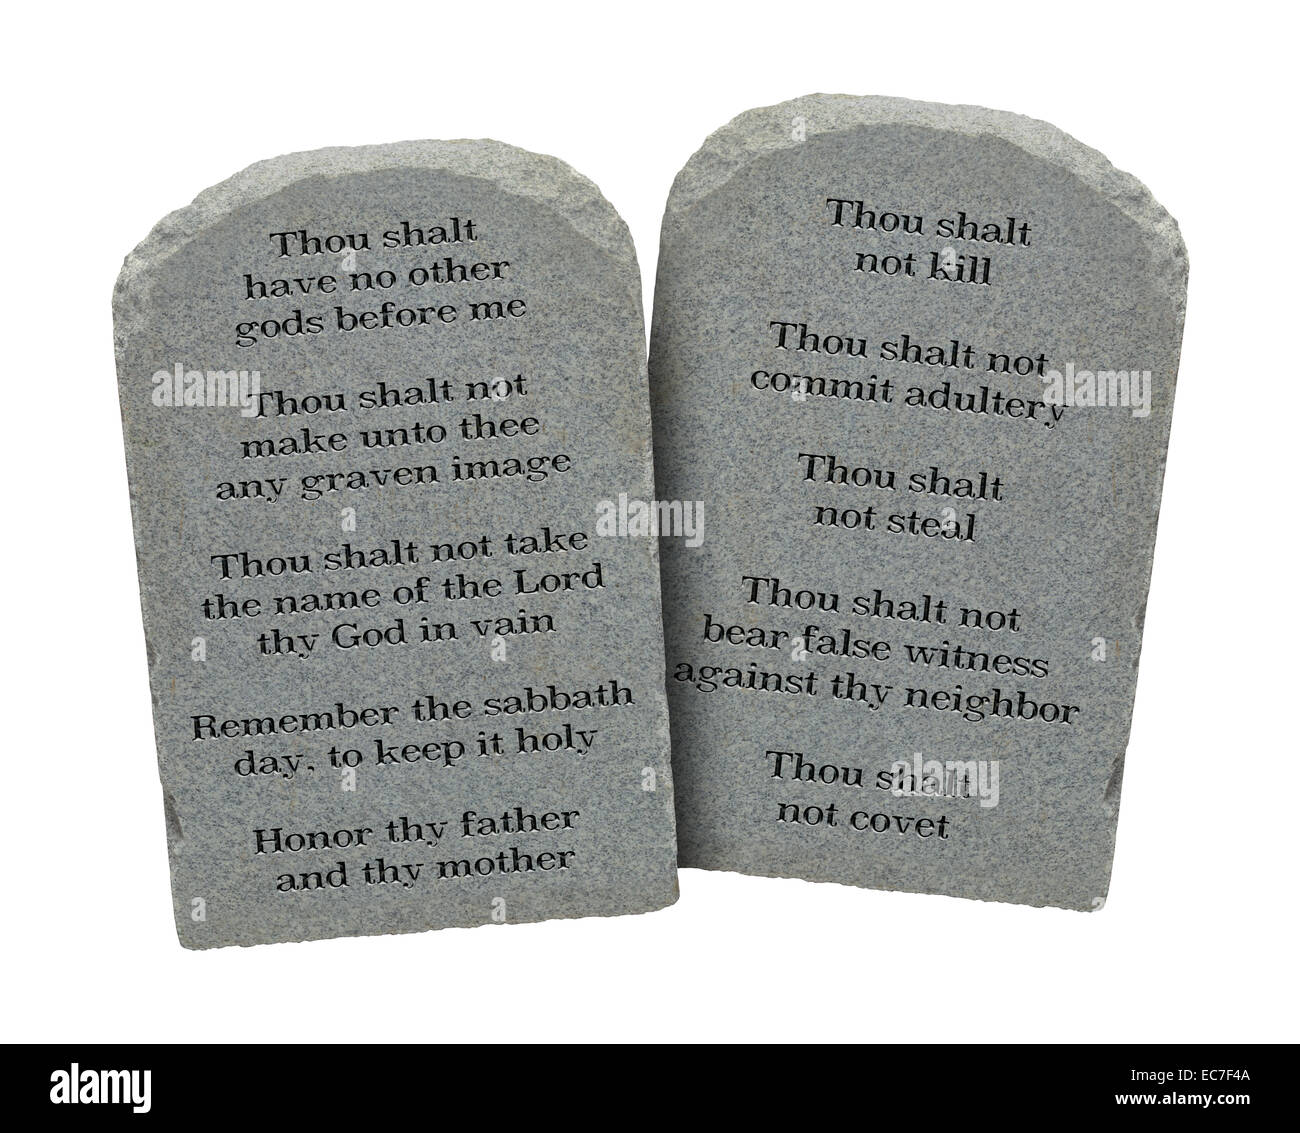 Moses Ten Commandments Stones Isolated on White Background. - Stock Image